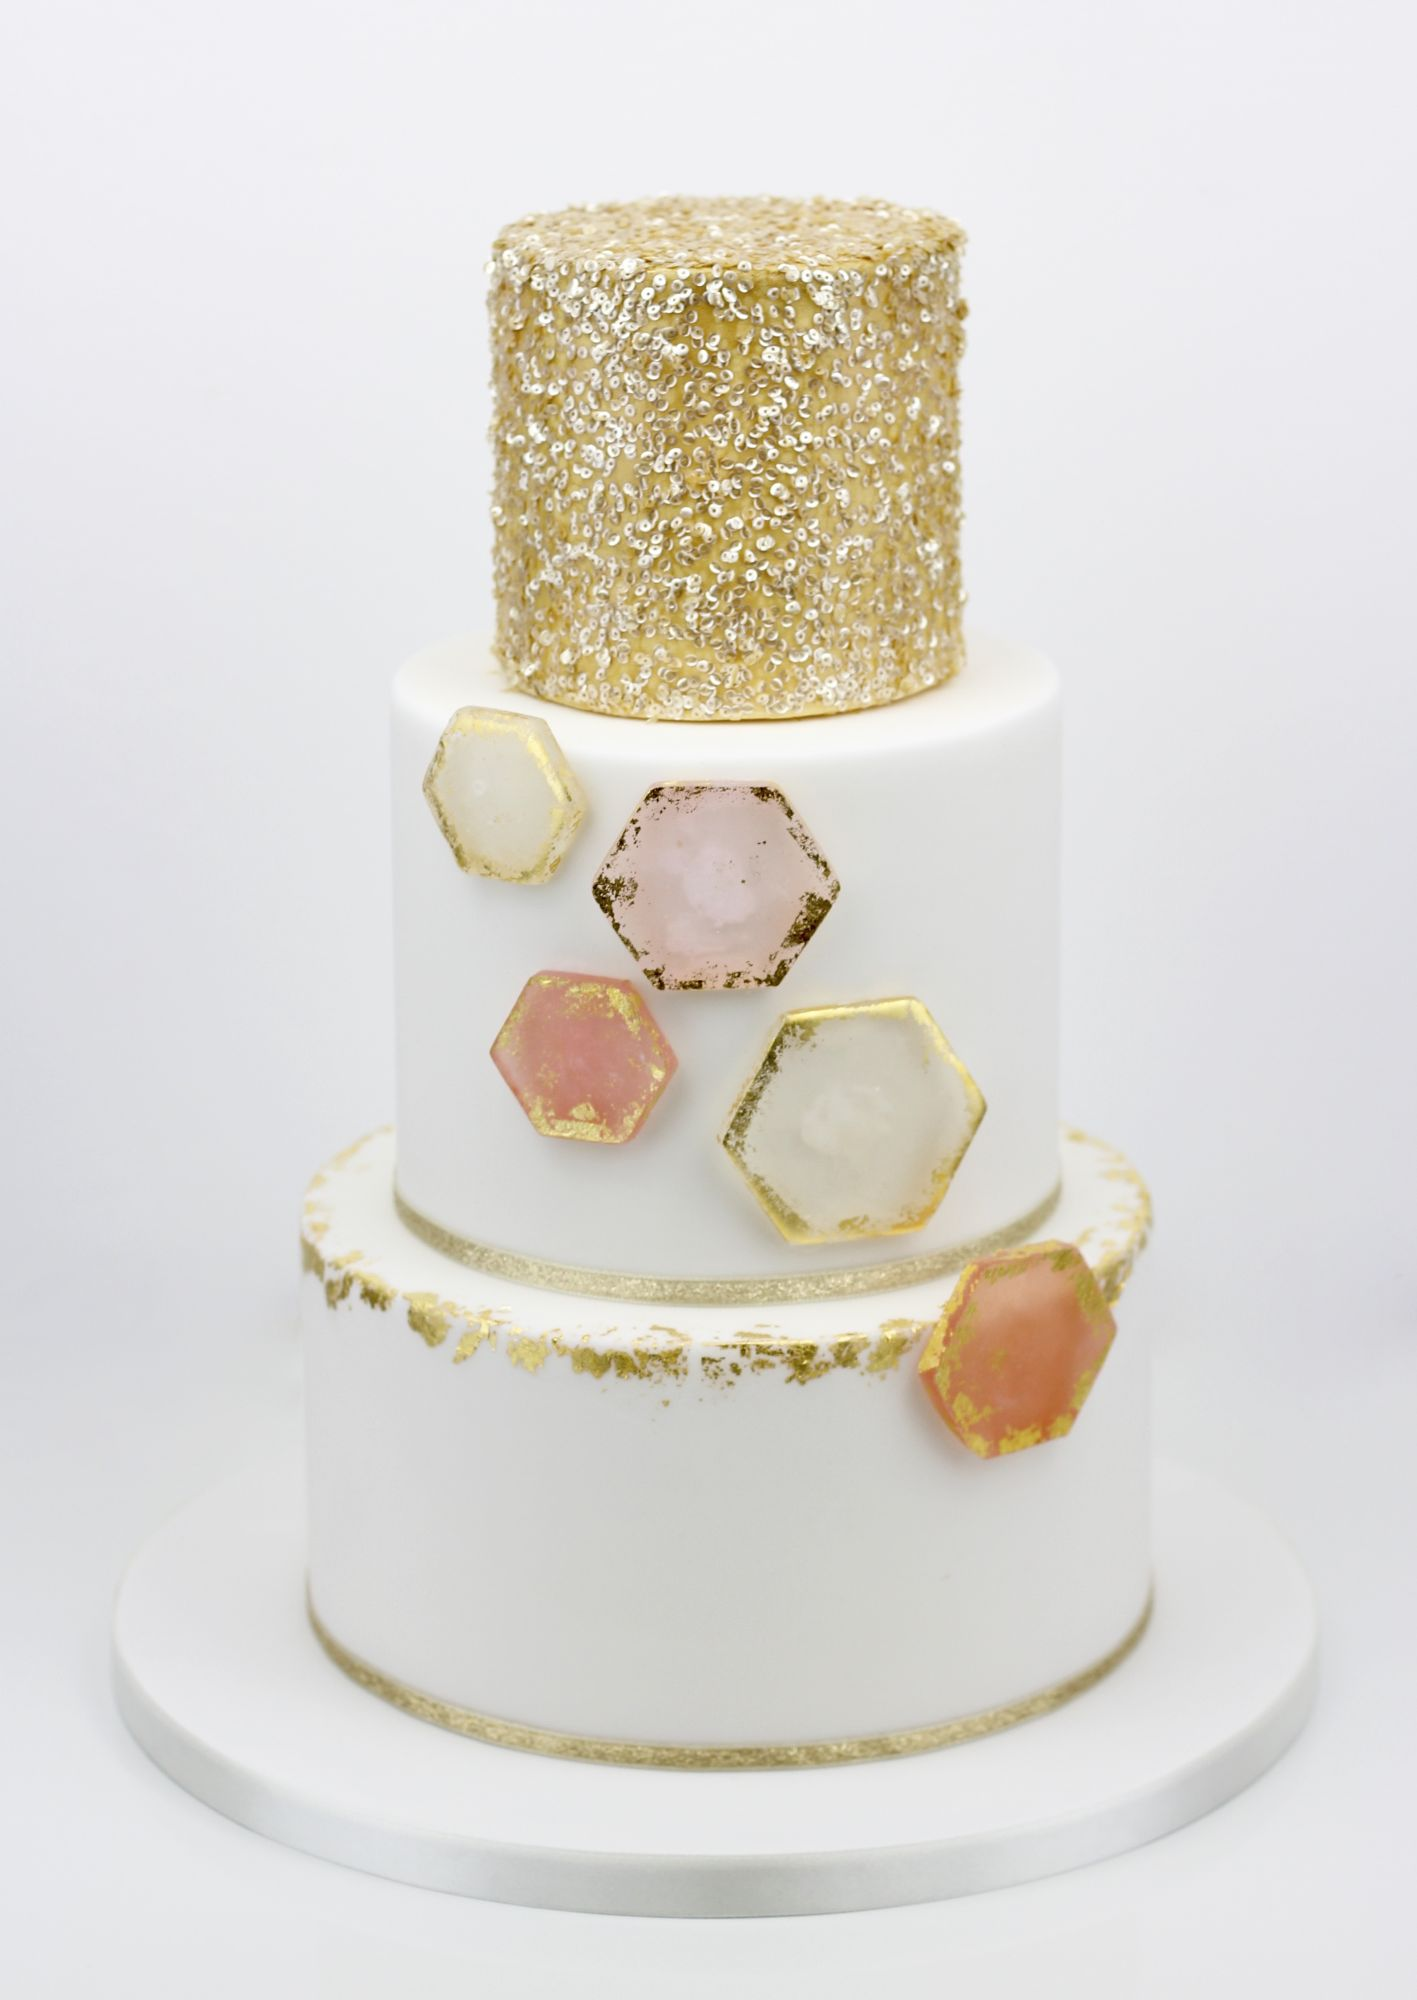 Gold edible sequins with sugar gold leaf hexagons.